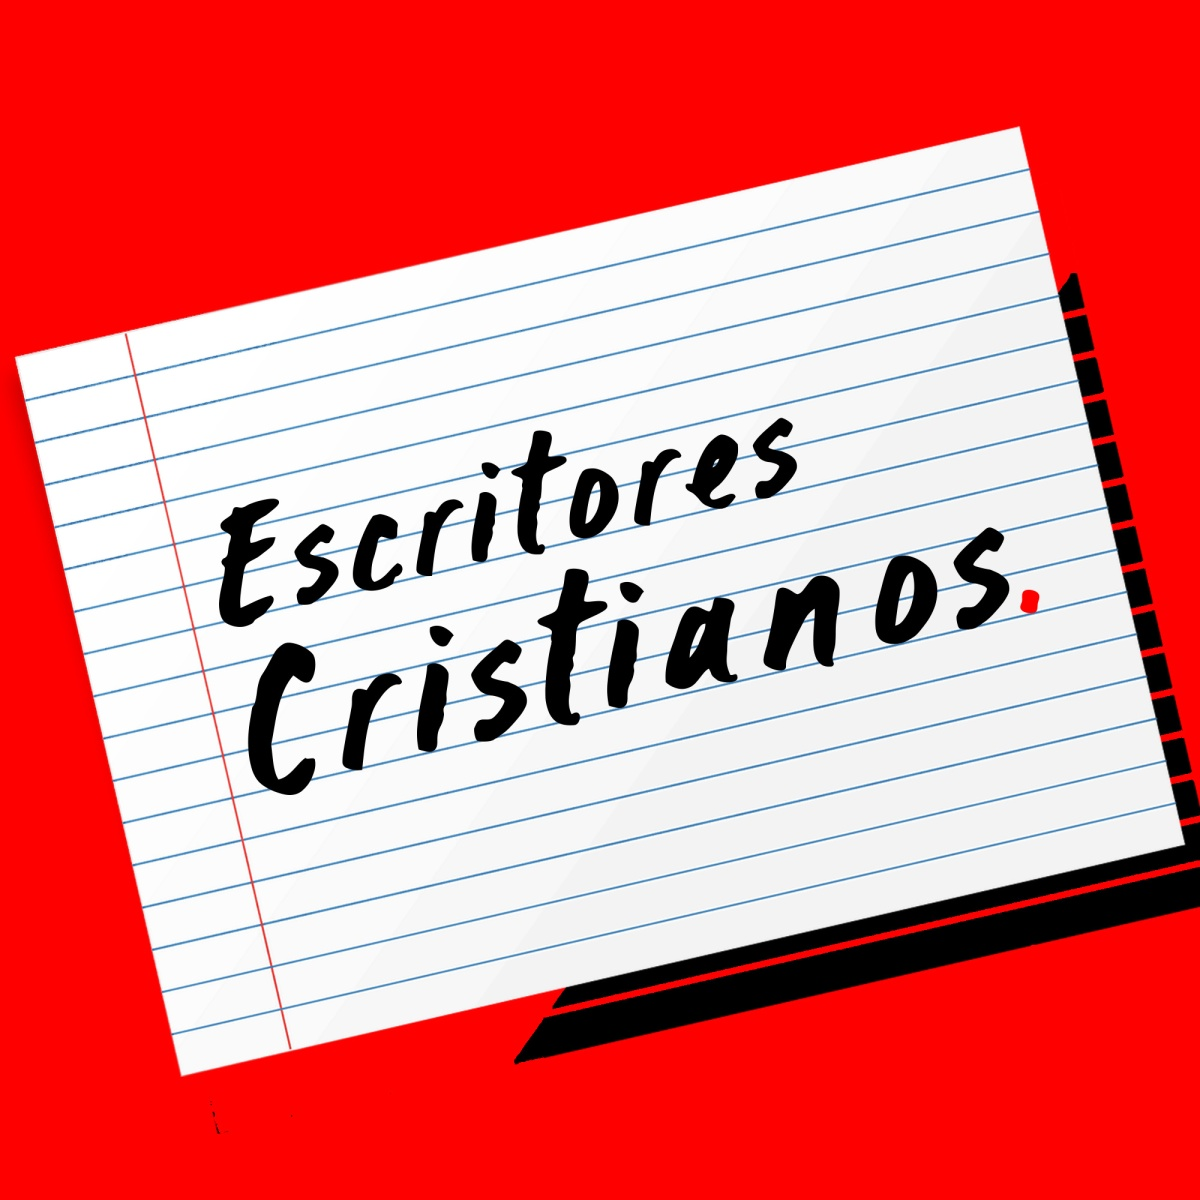 Introduciendo Escritores Cristianos